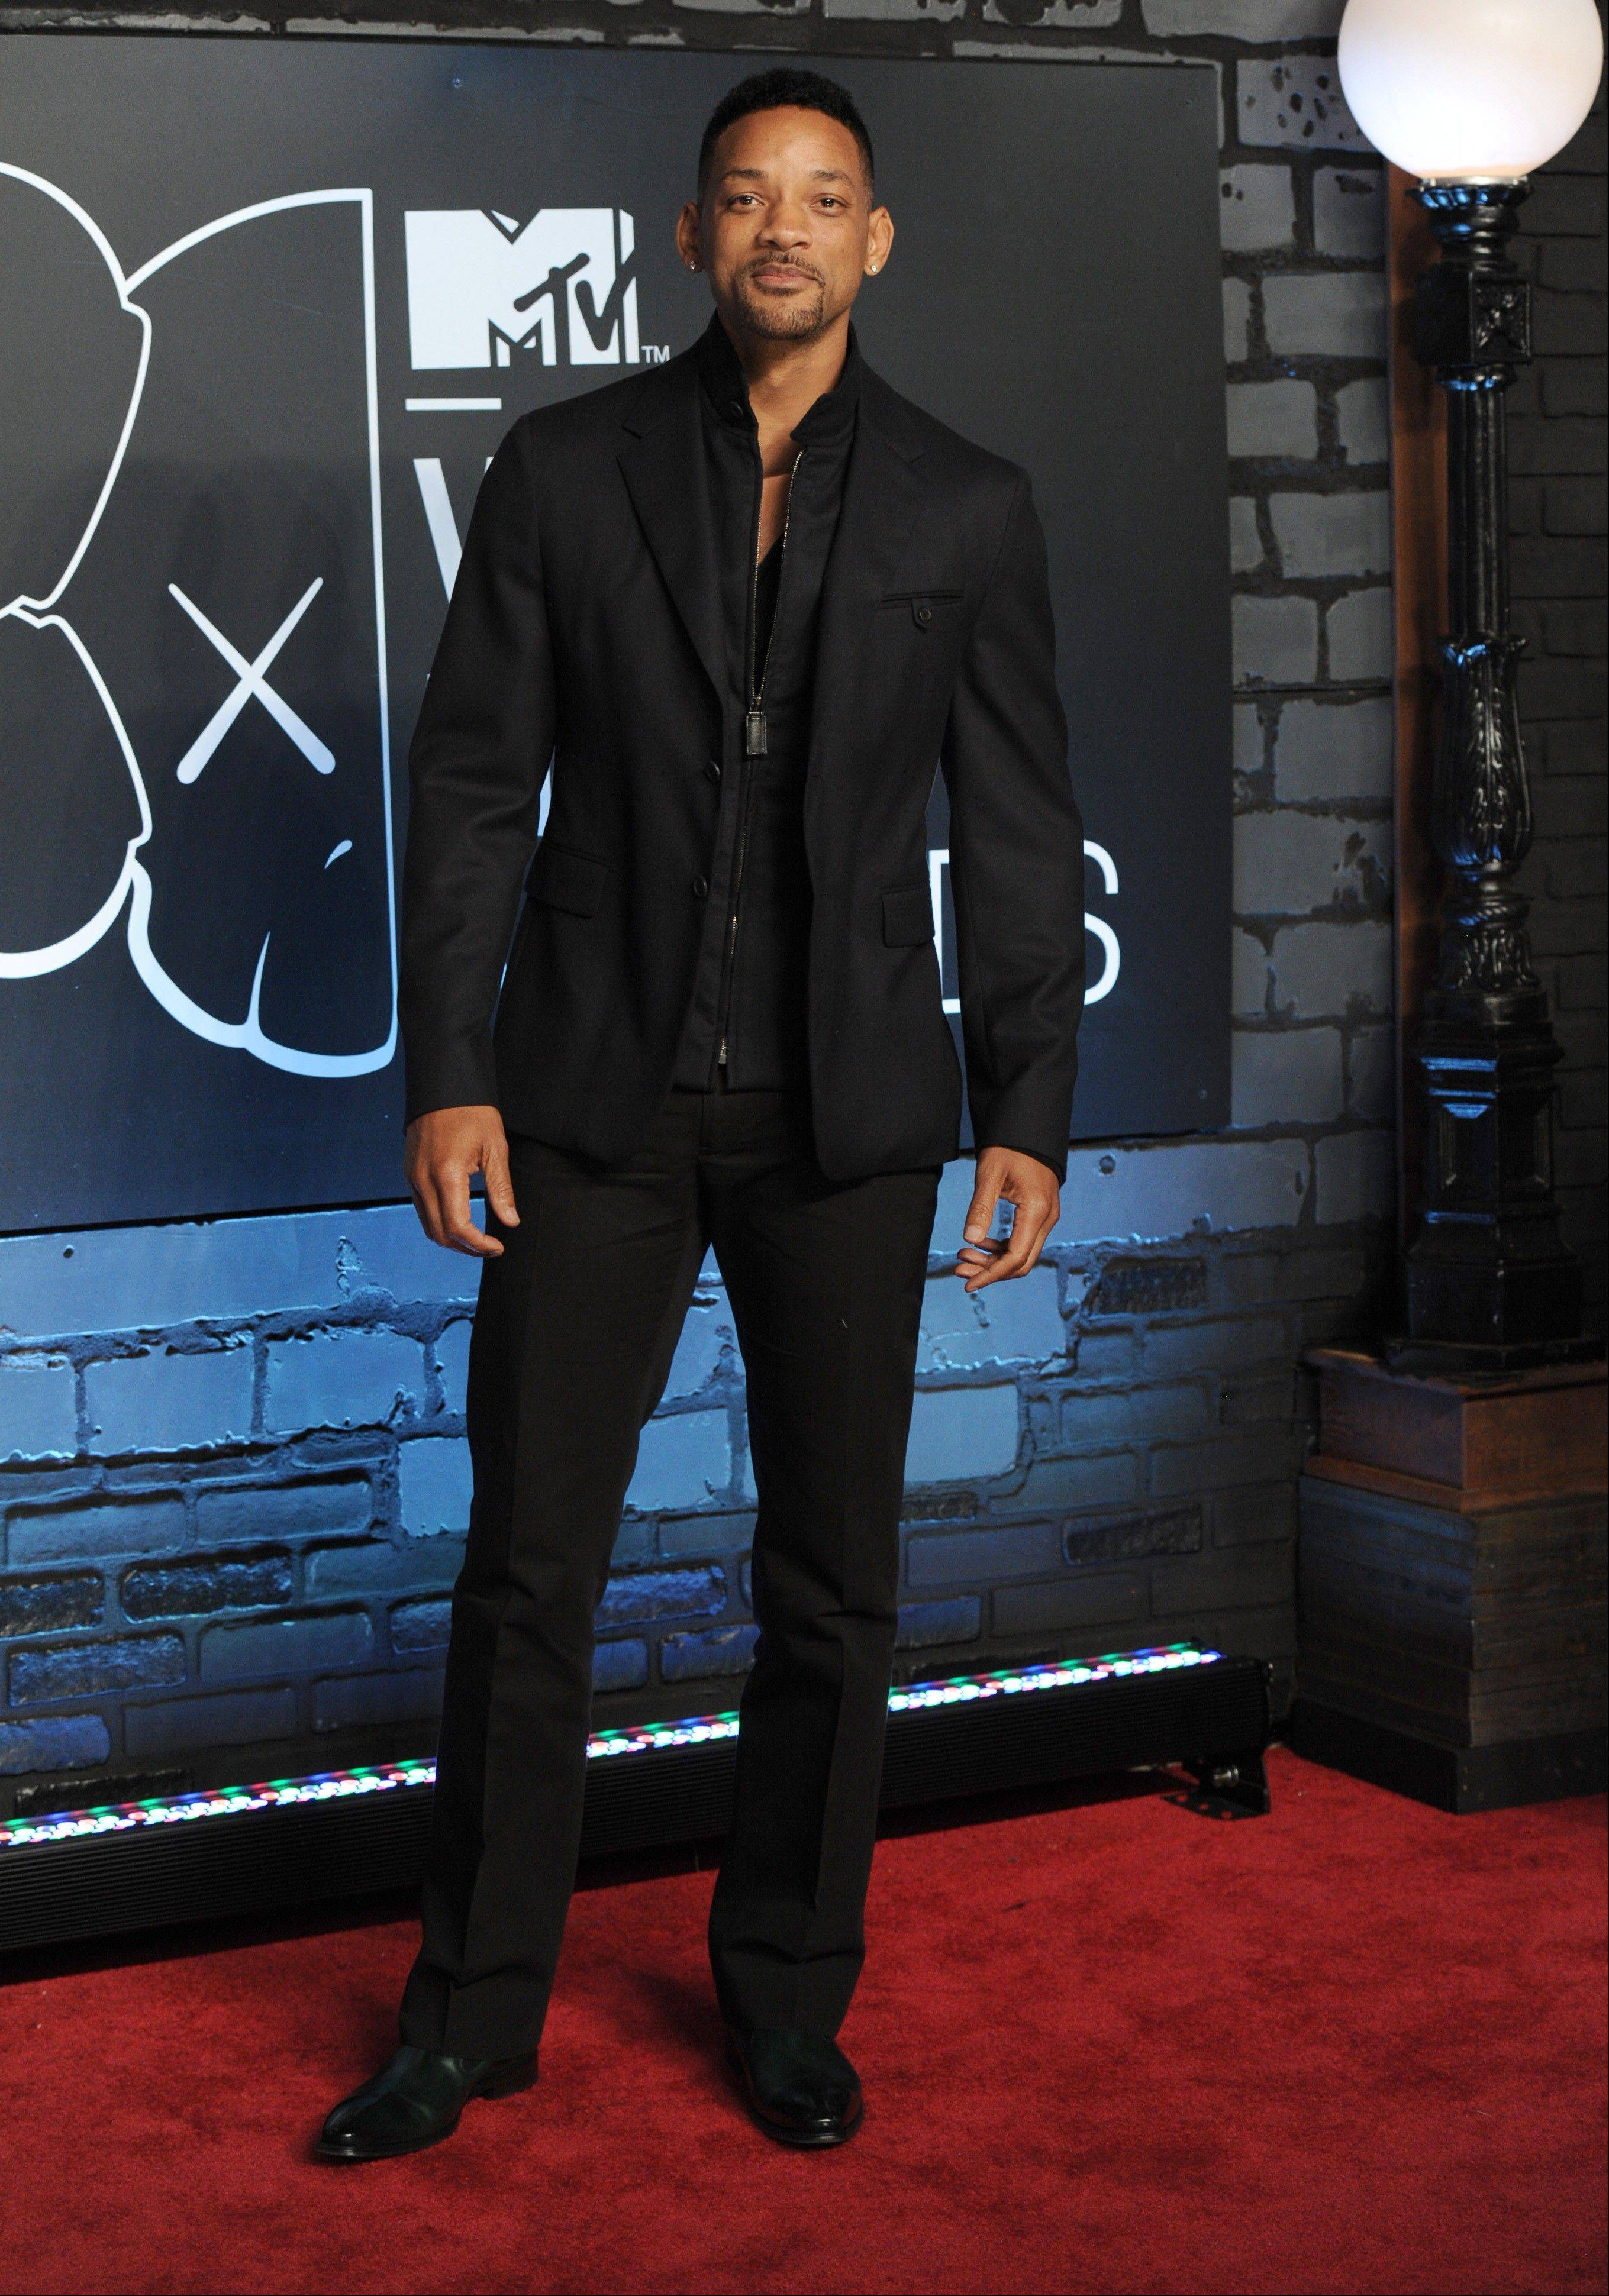 Will Smith arrives at the MTV Video Music Awards on Sunday, Aug. 25, 2013, at the Barclays Center in the Brooklyn borough of New York.